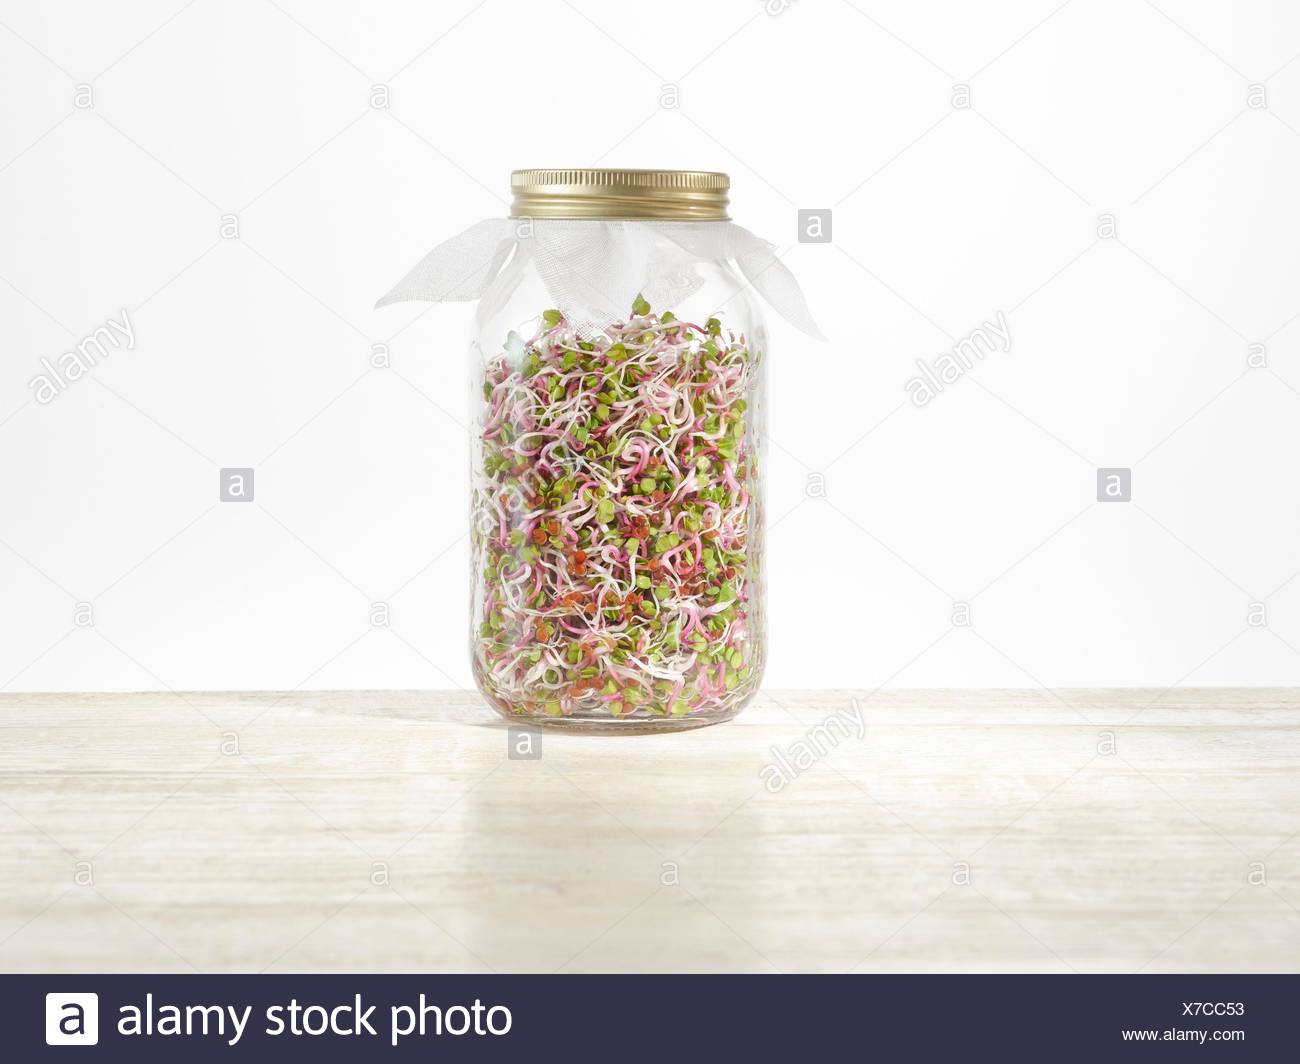 Sprouting rose radish in a jar. - Stock Image